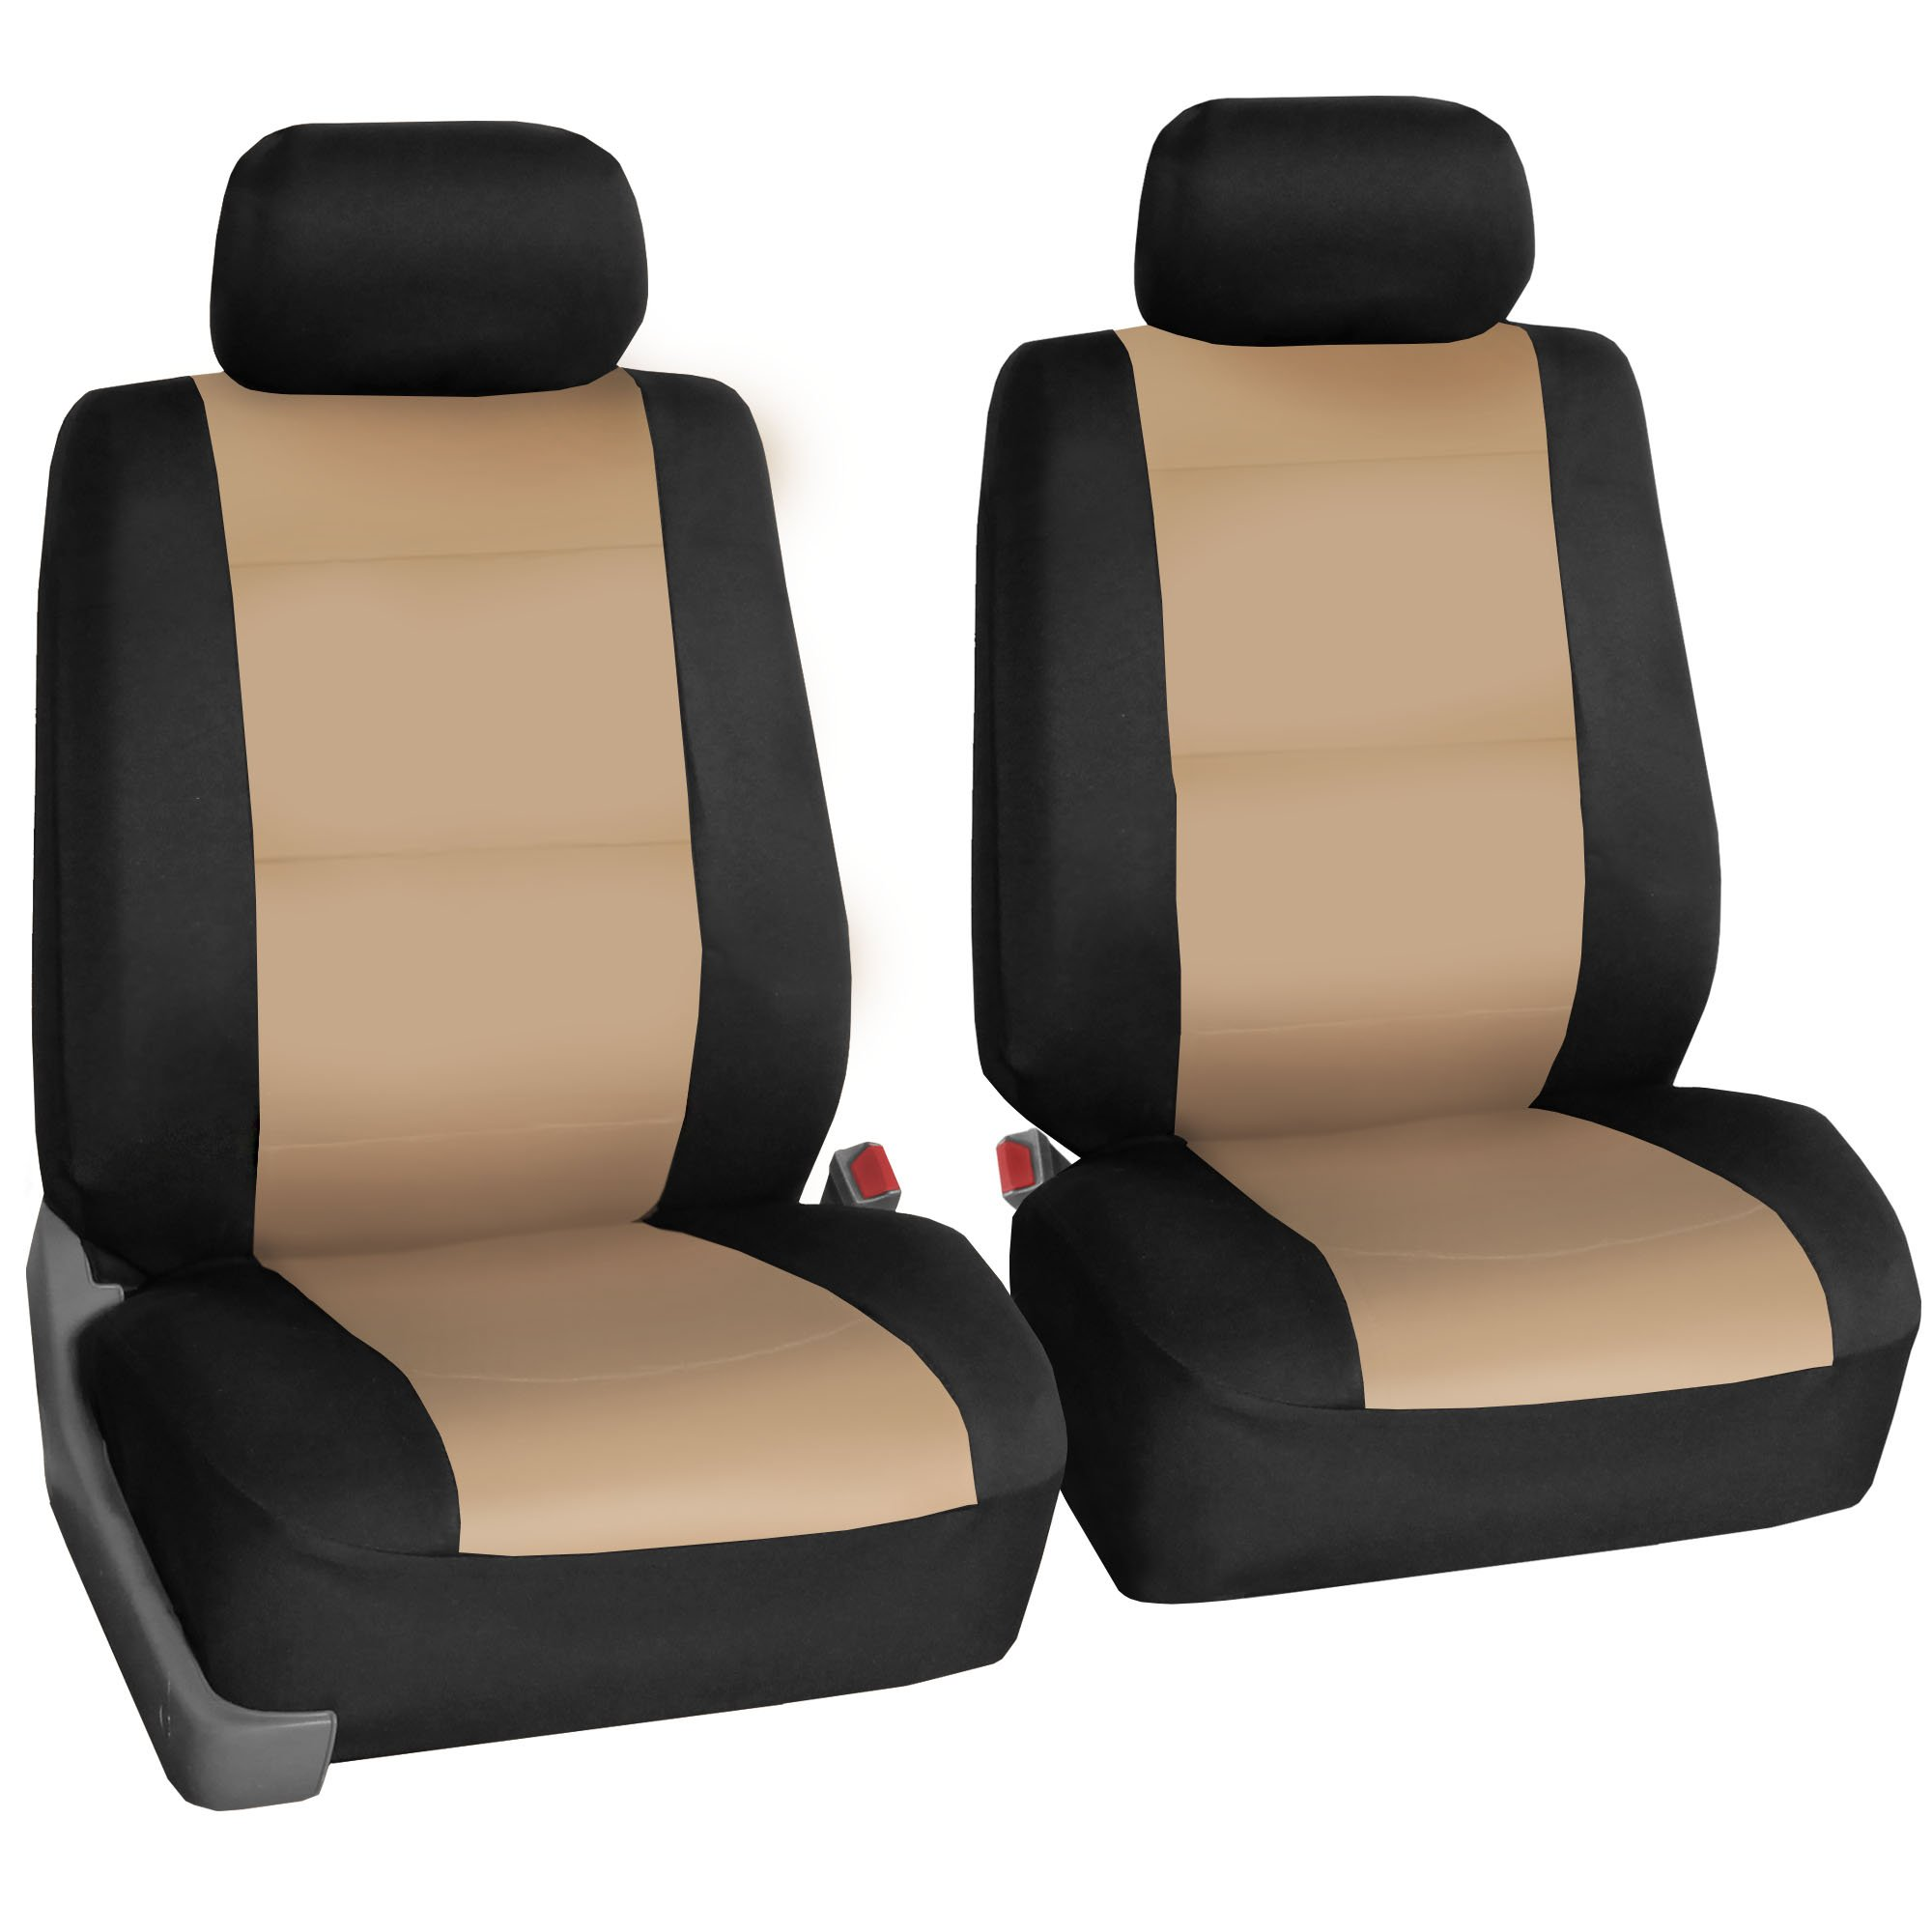 FH Group FB083BEIGE102 Beige-Half Neoprene Bucket Seat Cover Airbag Compatible by FH Group